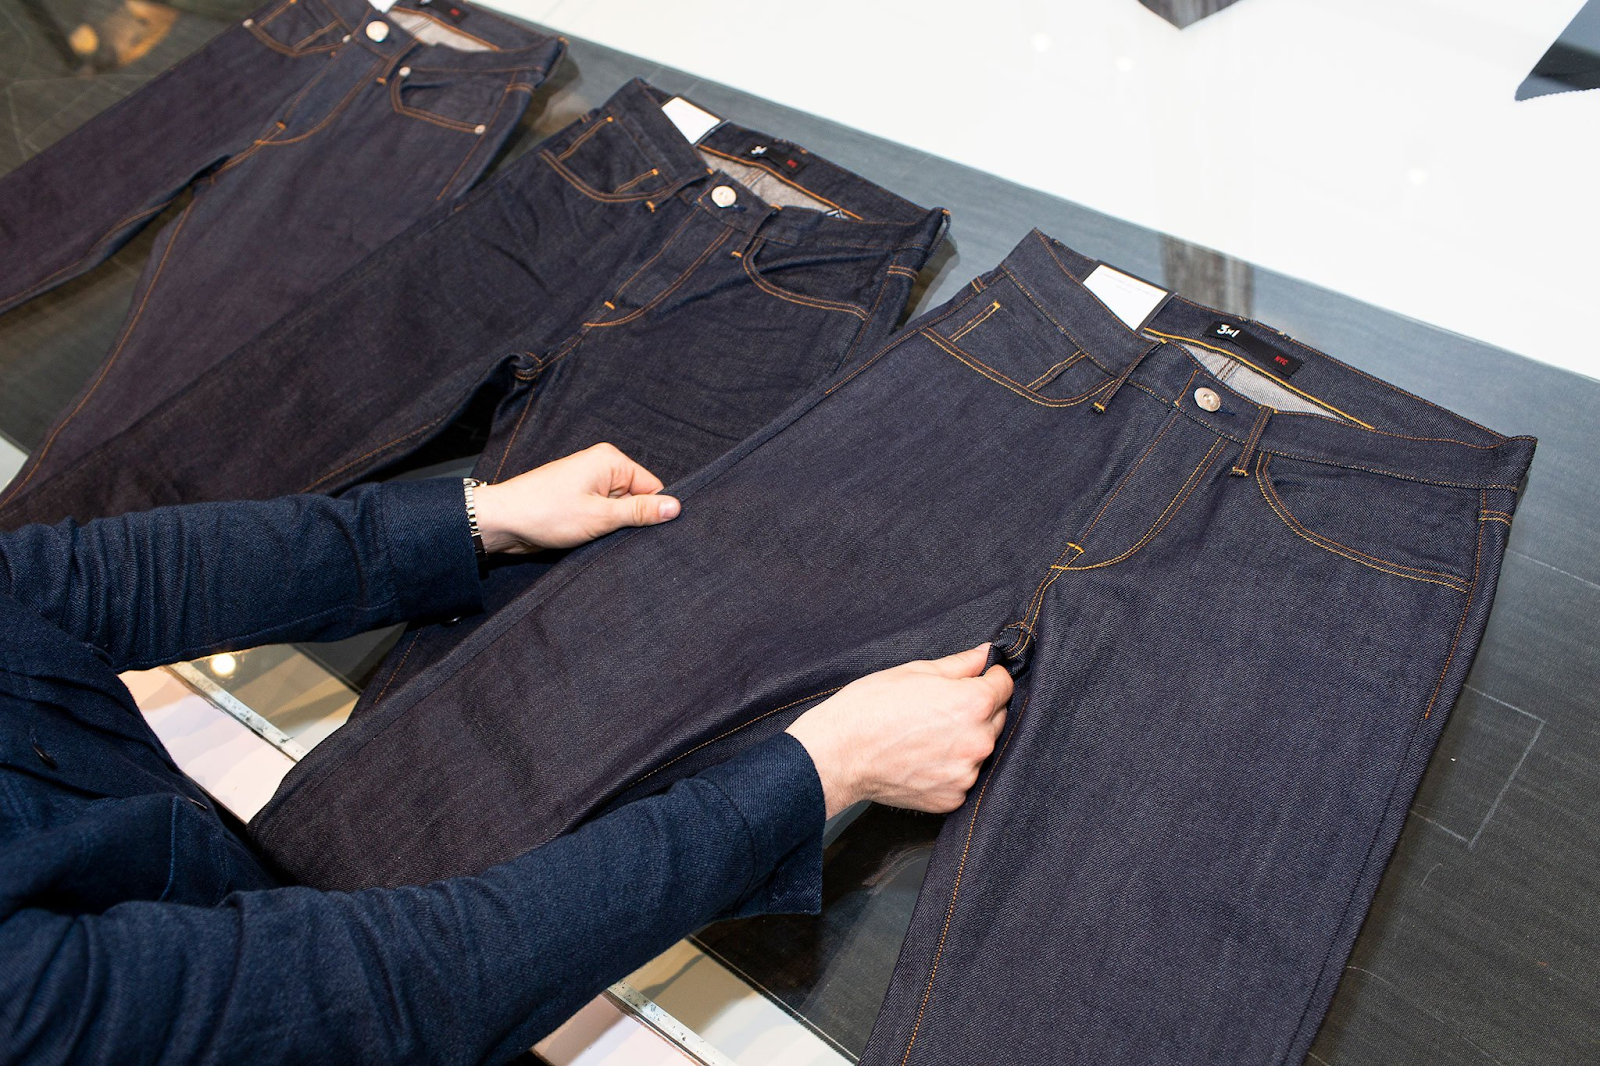 Bespoke jeans from Tailored-Jeans.com